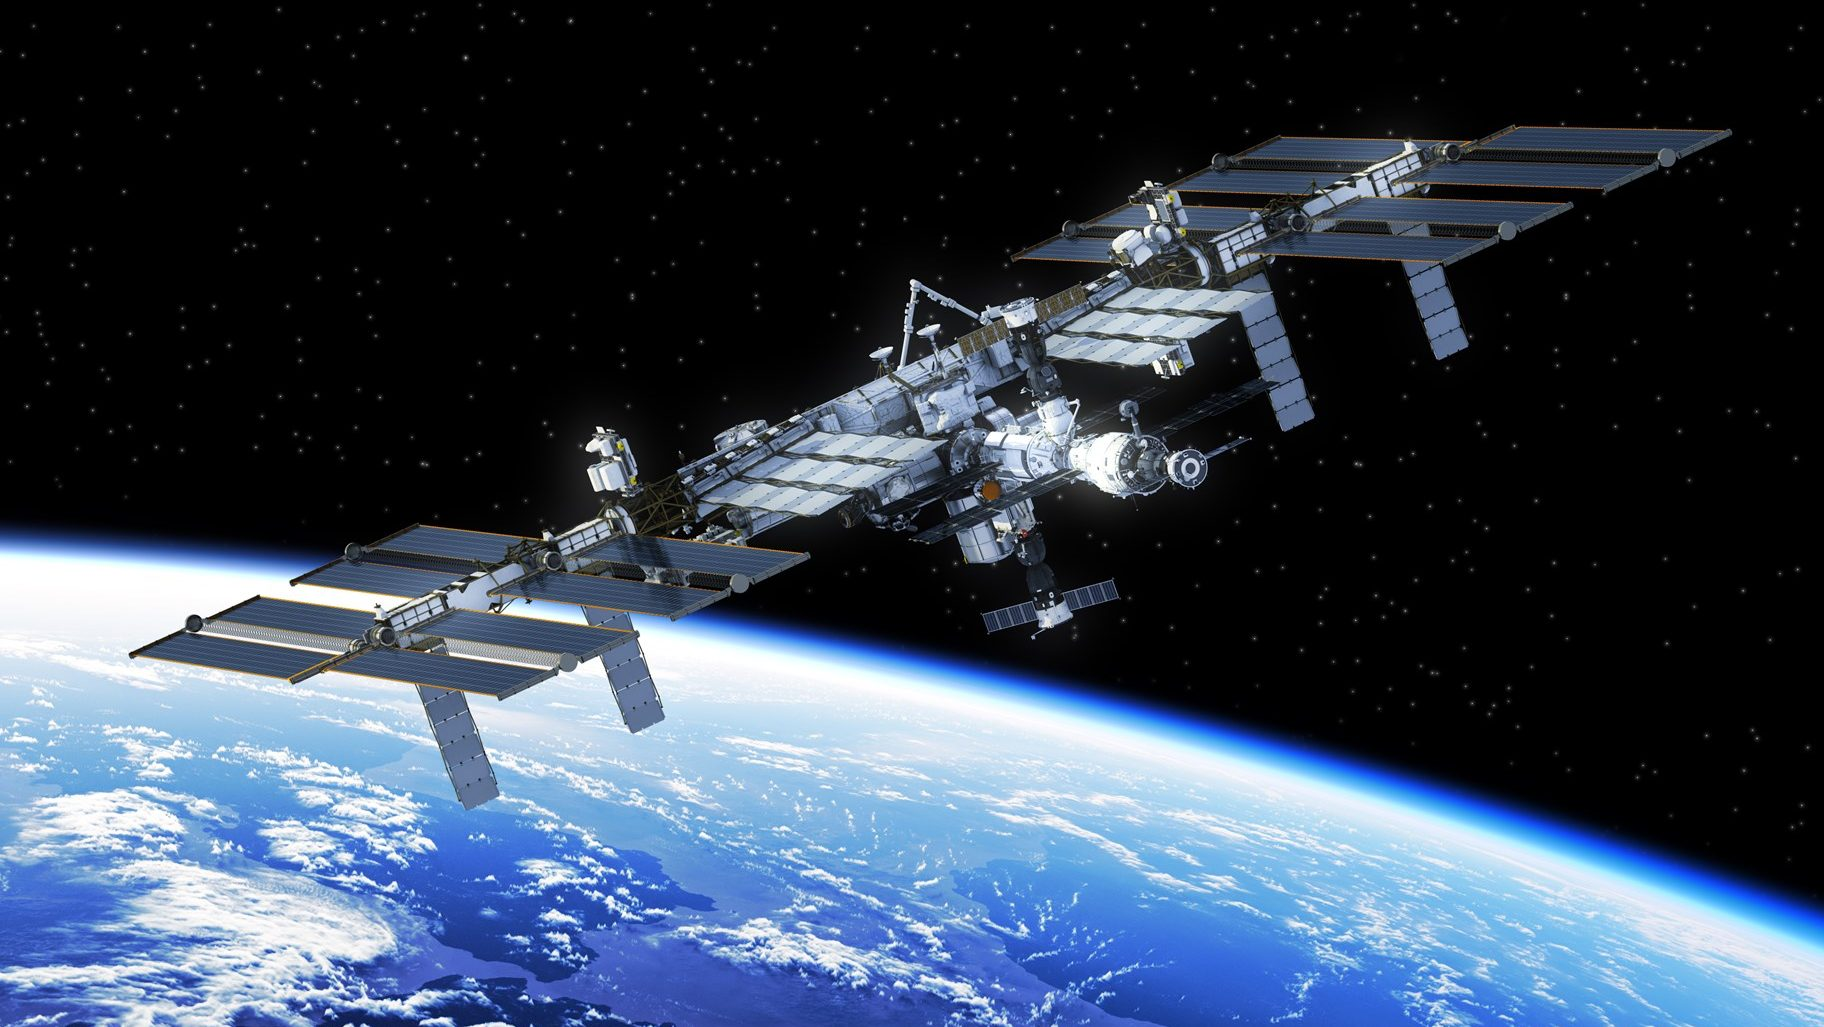 ISS_Large